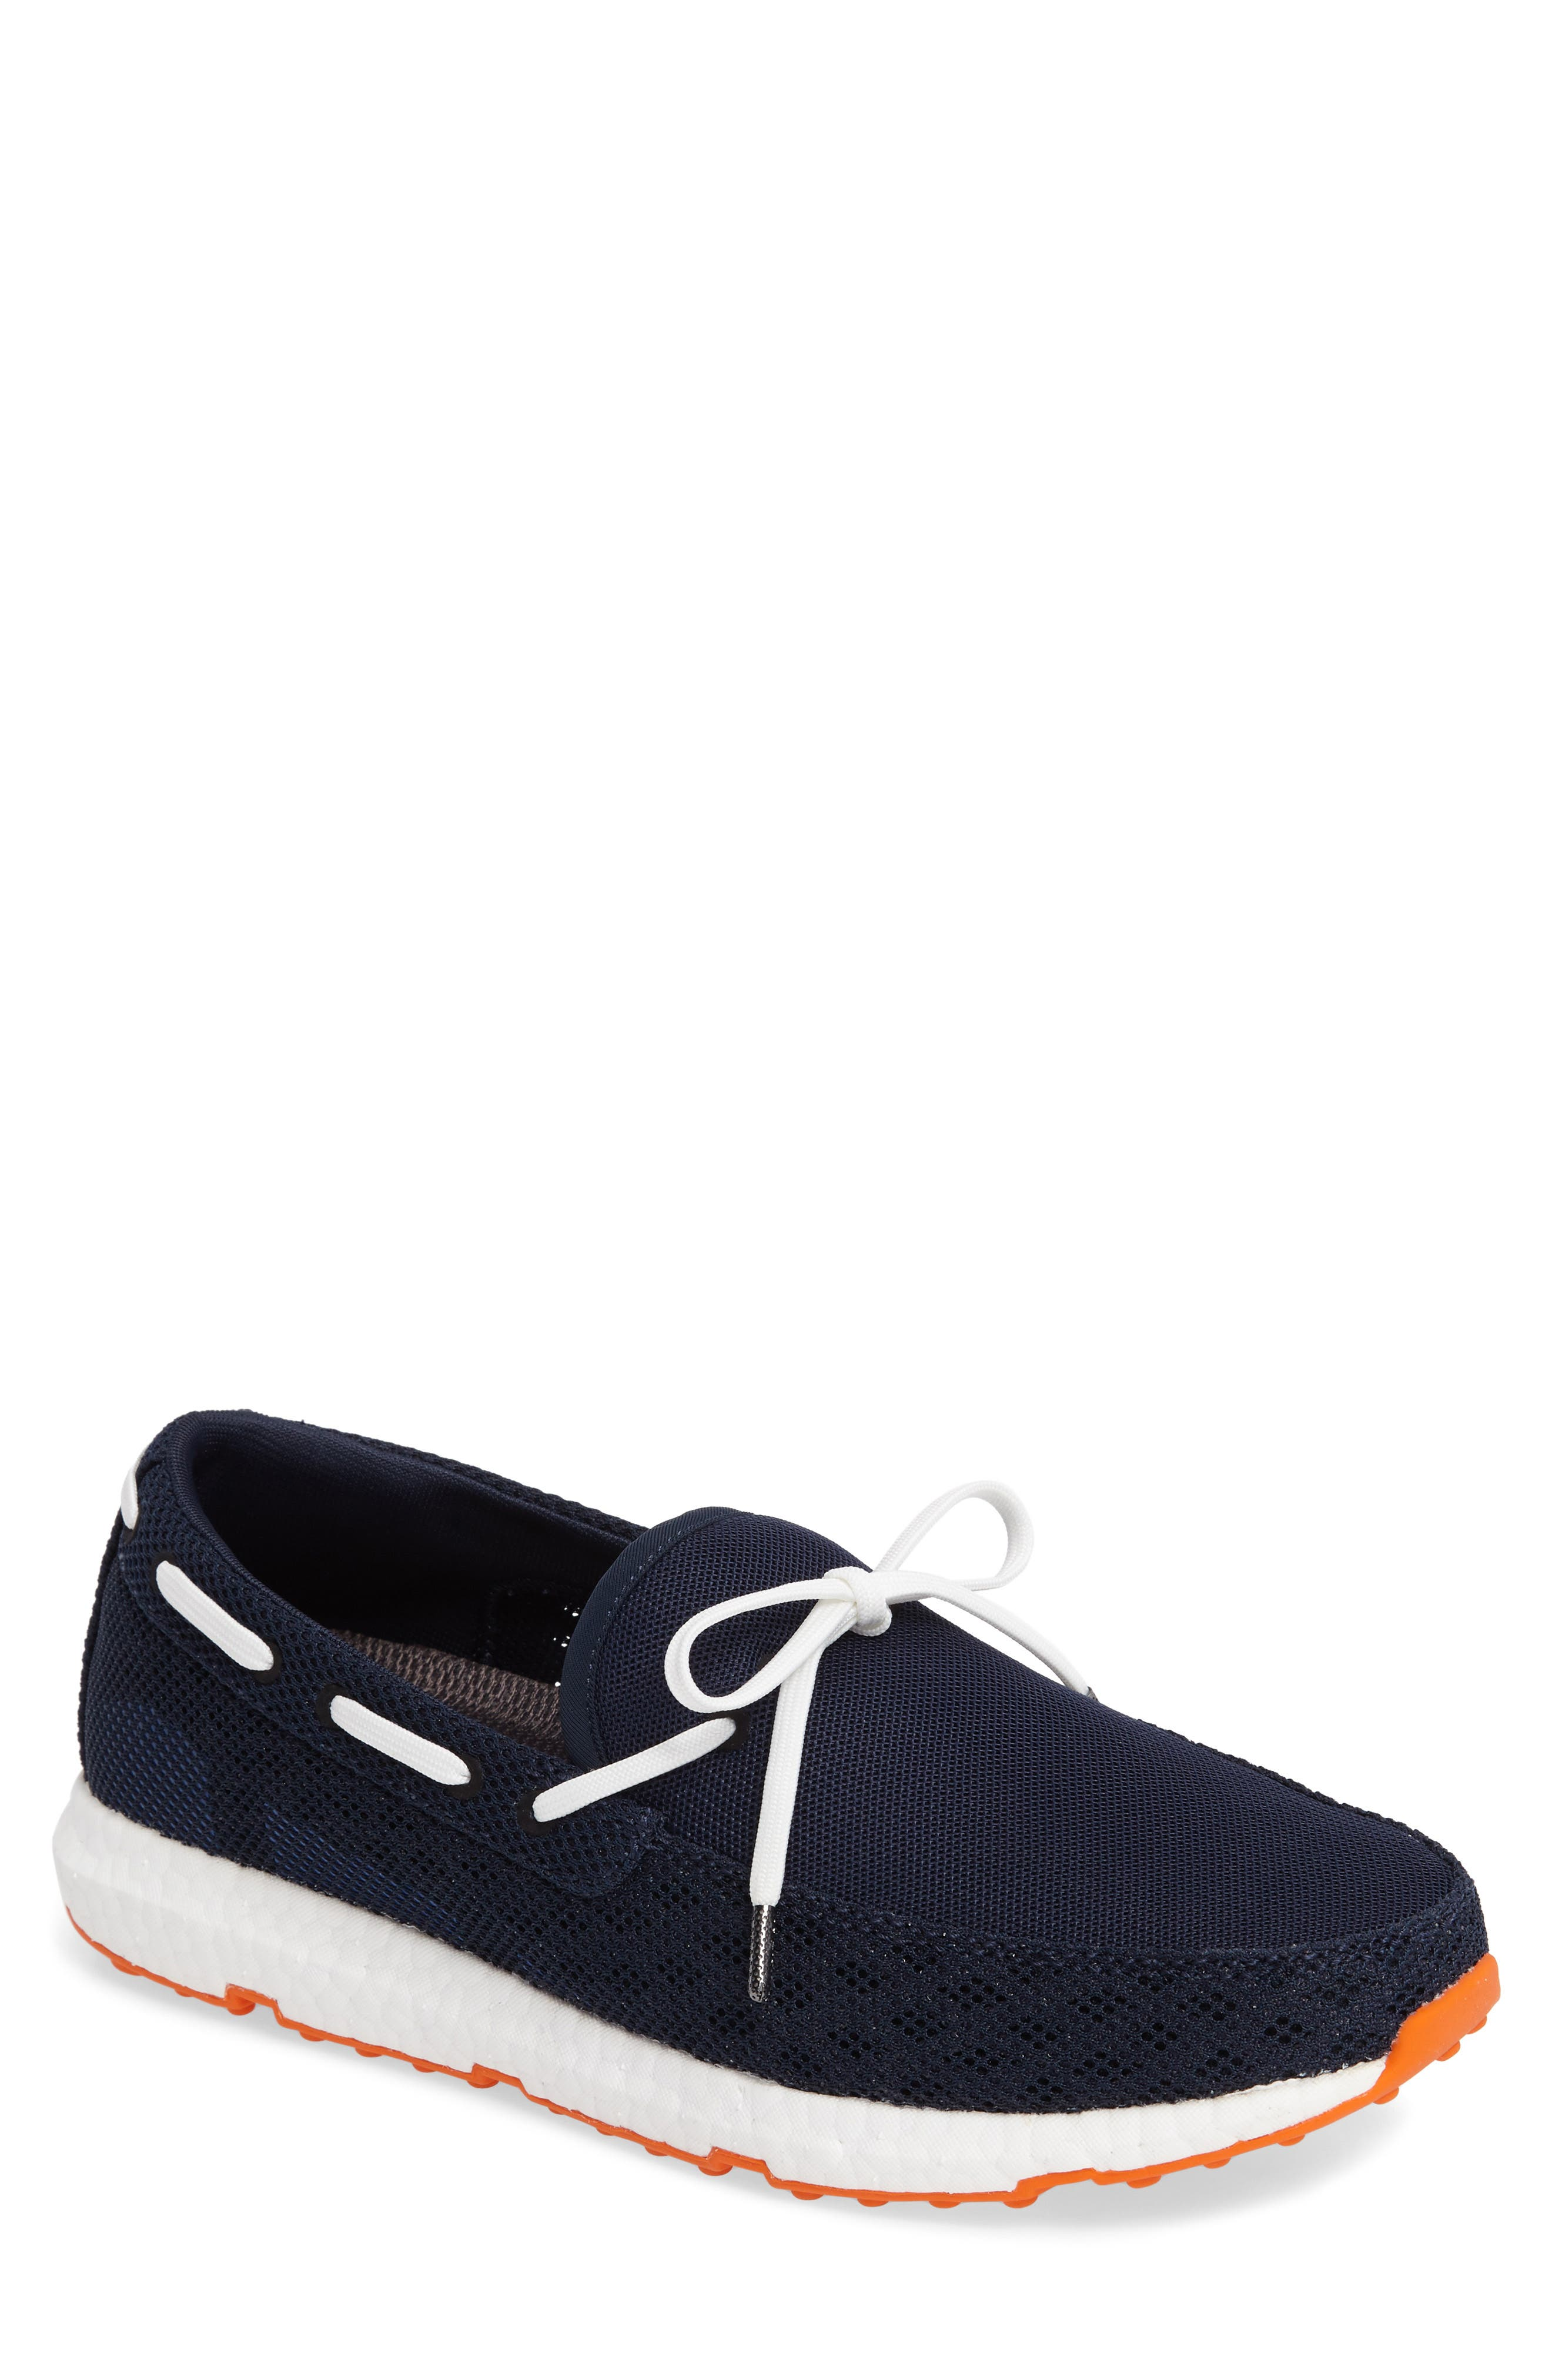 Breeze Loafer,                         Main,                         color, Navy/ Orange Fabric